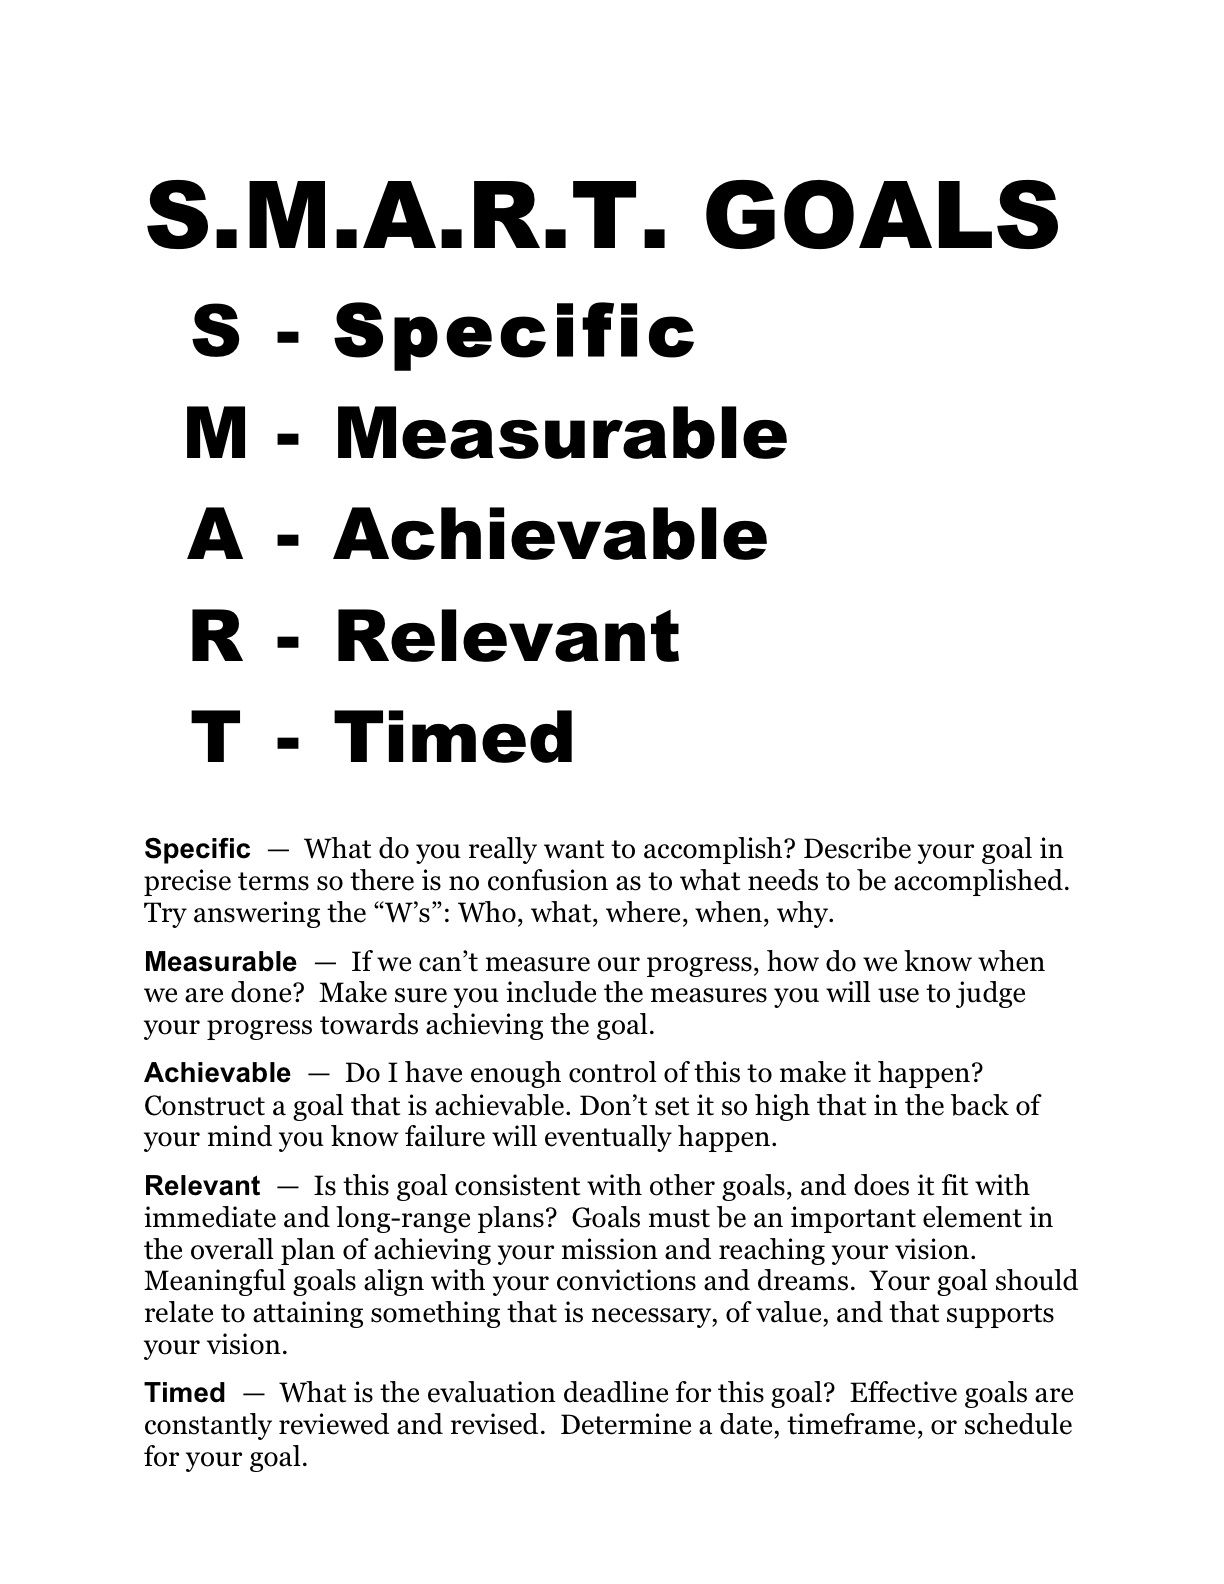 Smart Goals Worksheet SMARTGOALS Goals worksheet